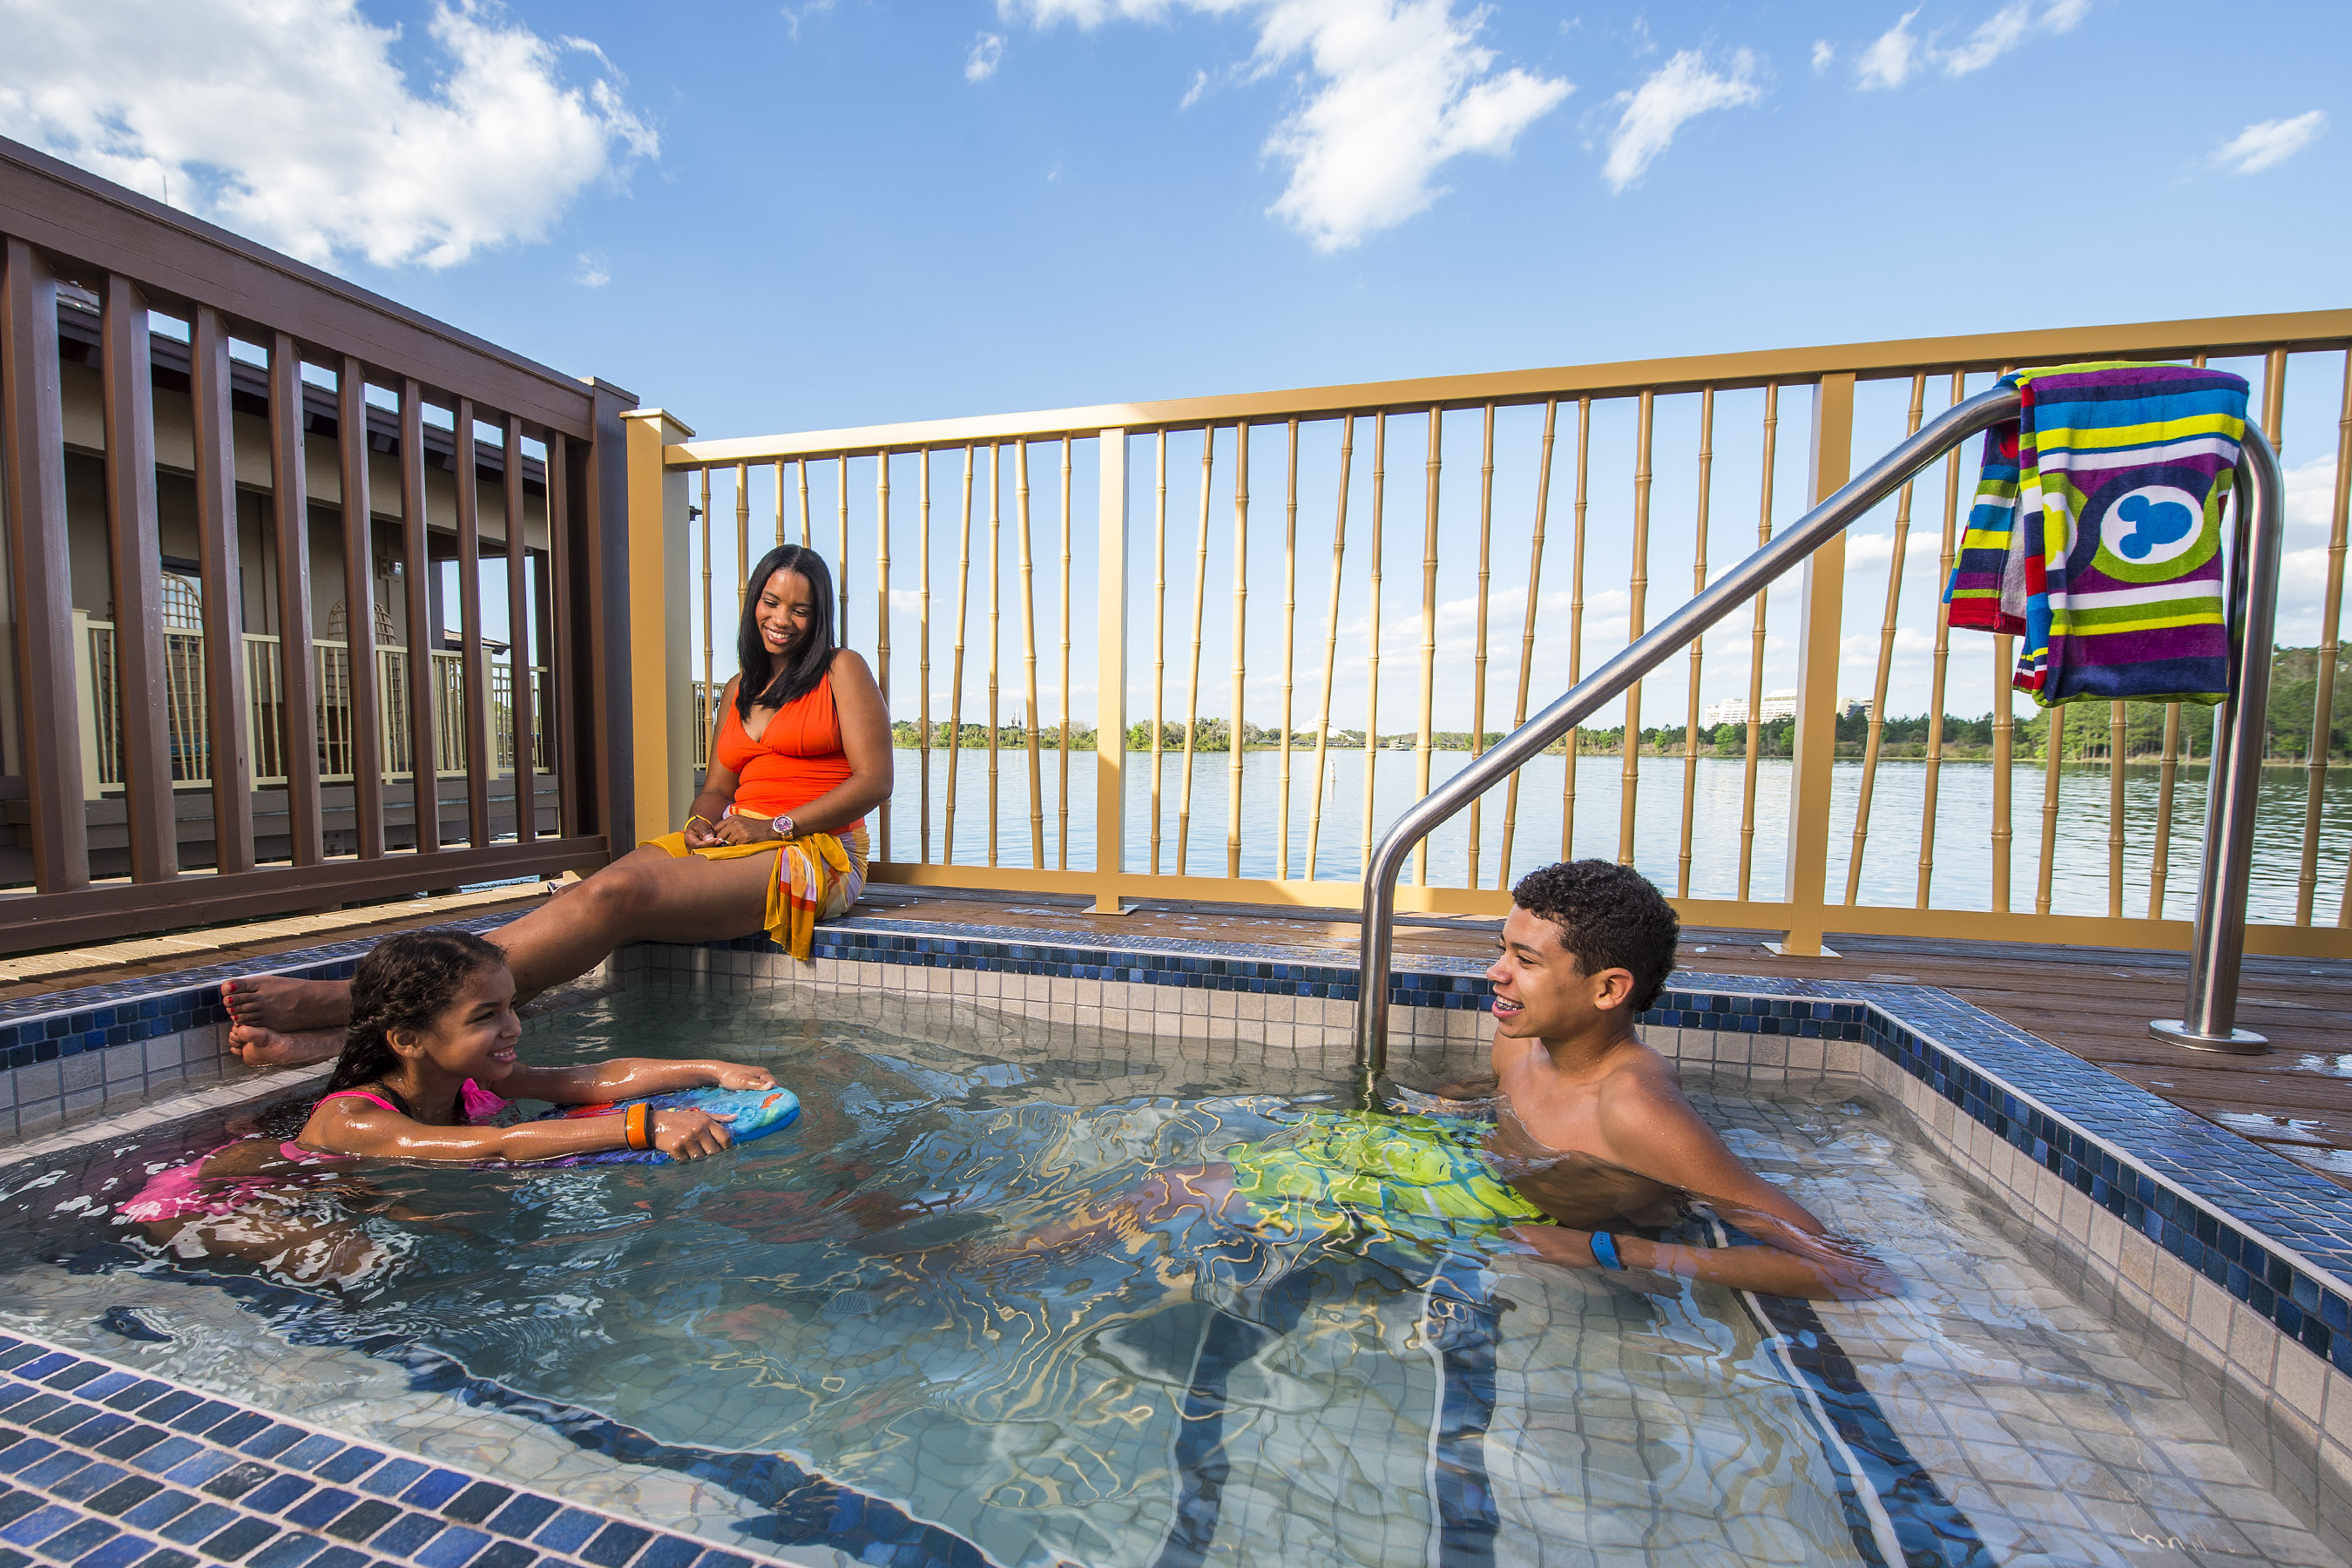 Fancy Photo Tour Of The Bora Bora Bungalows At Disney's Polynesian Village within Beautiful Disney Polynesian Resort Bungalows